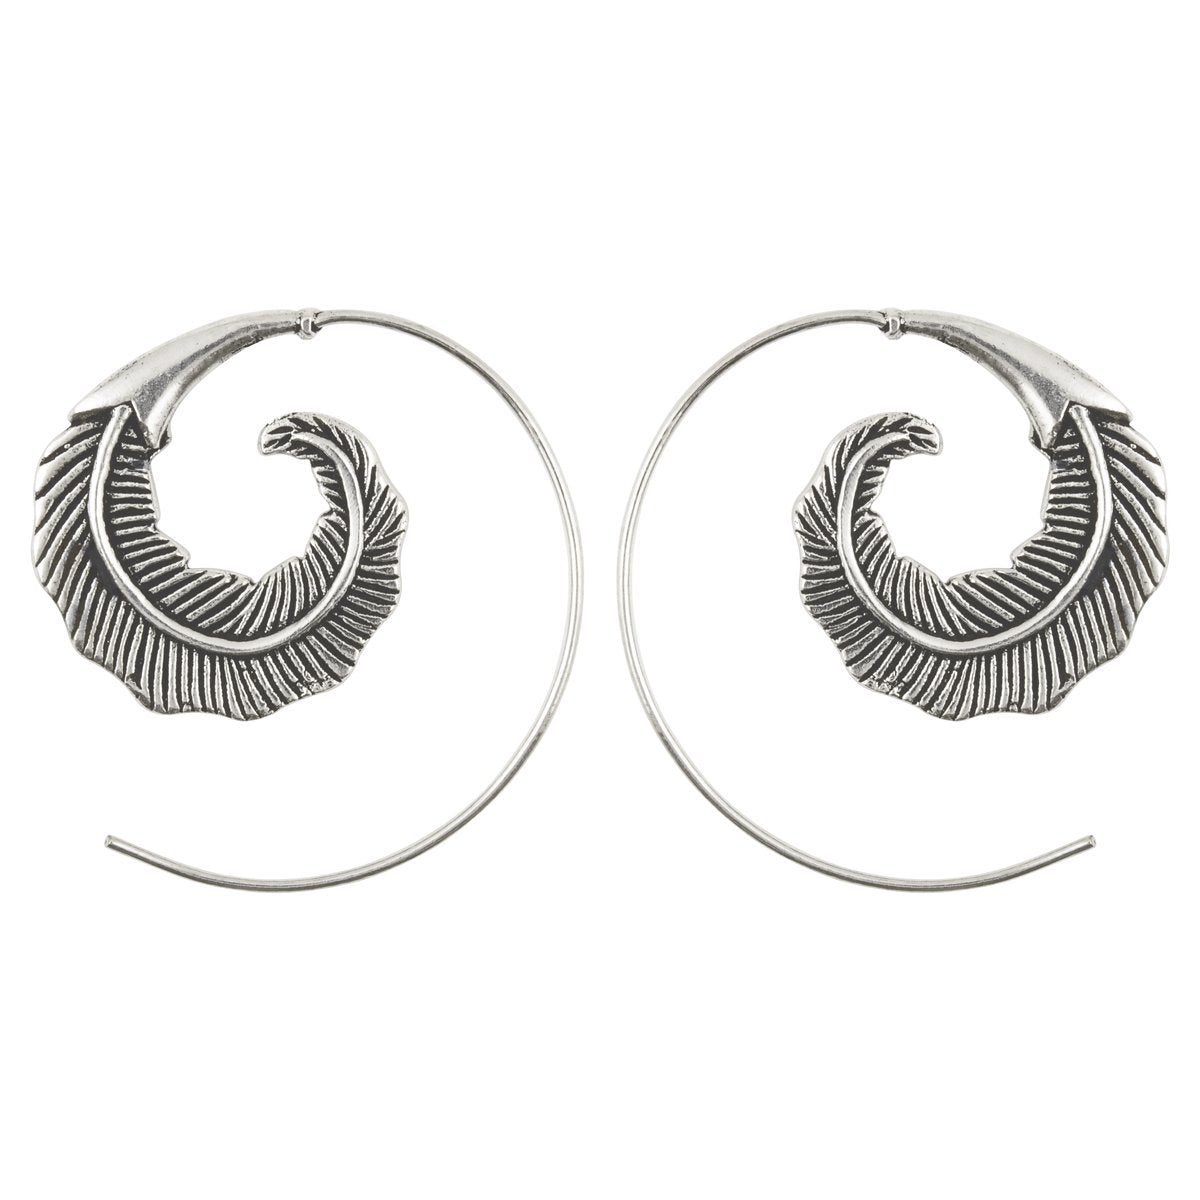 Finished Jewelry-Simple-Brass Feather Spiral Earrings